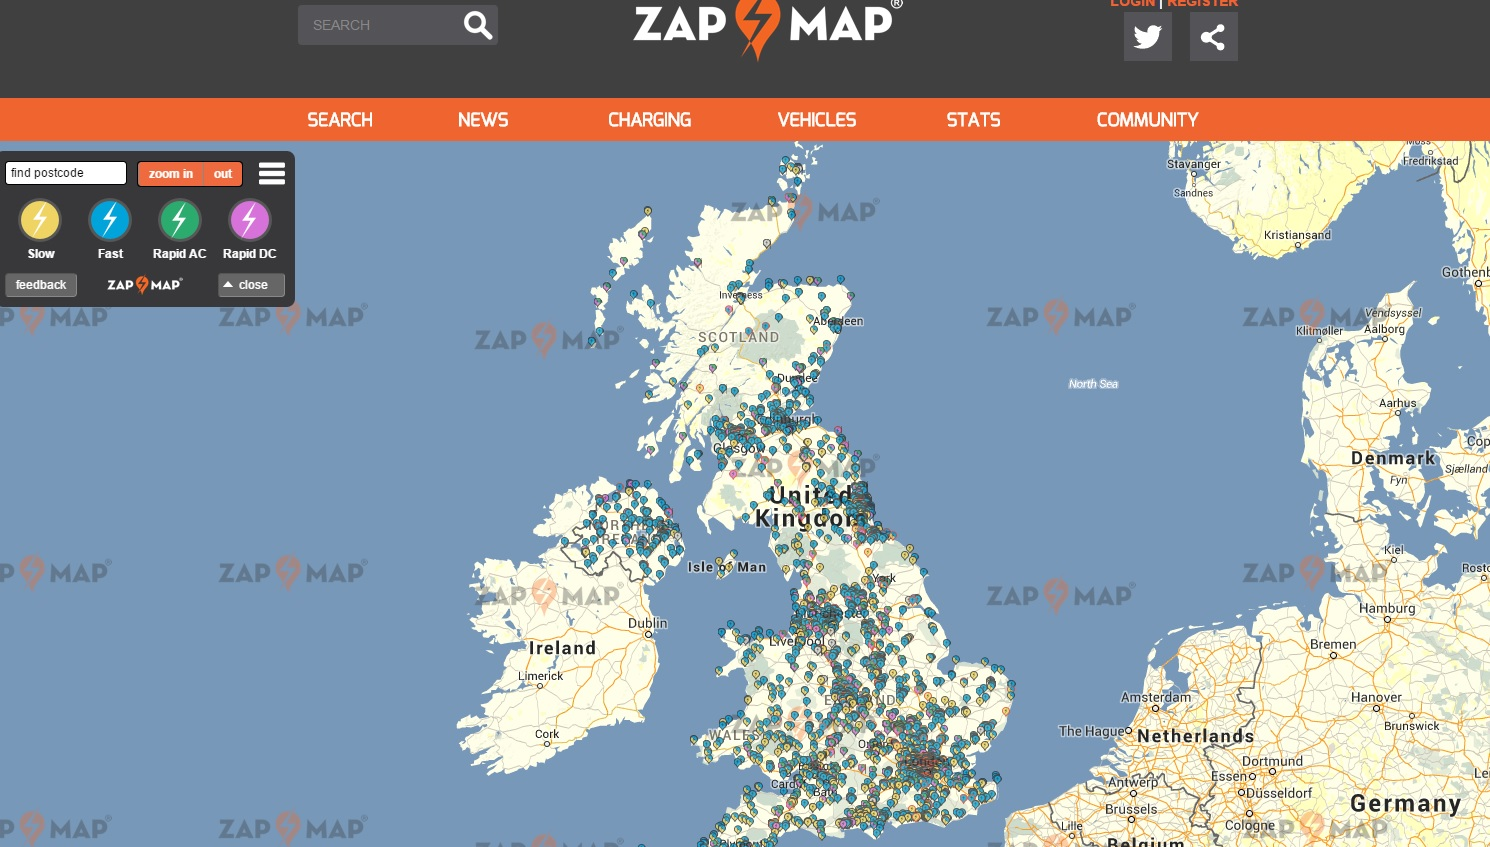 Map of EV chargers in the UK